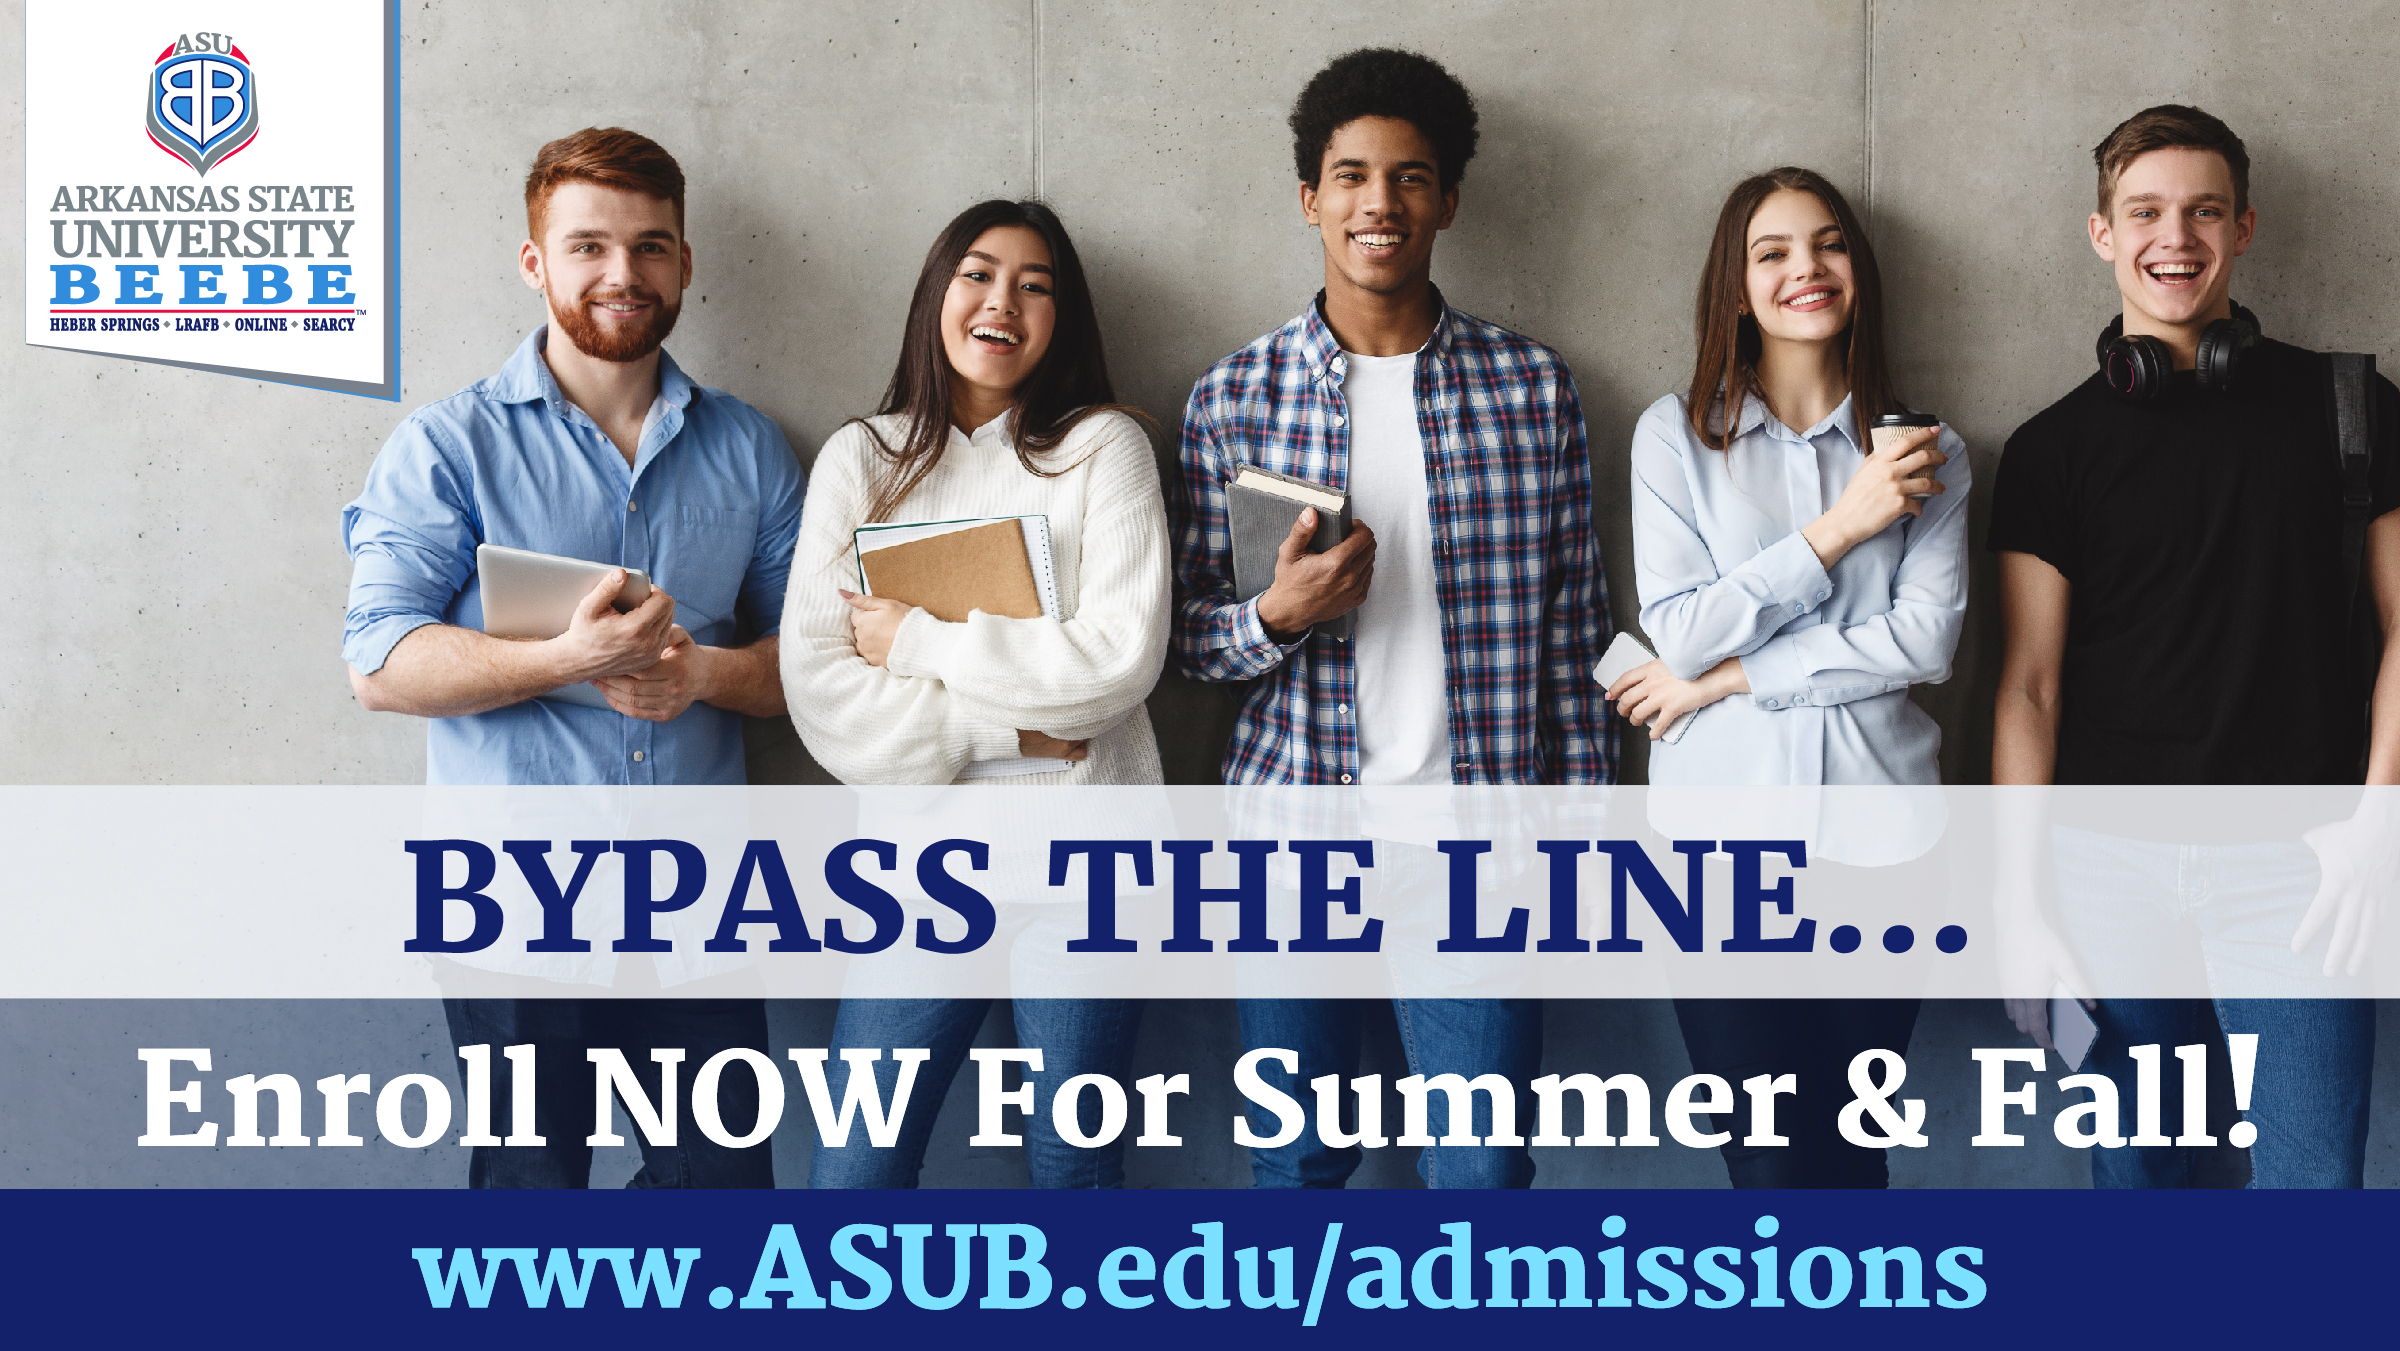 Photo of students lined up along a wall with wording bypass the line and enroll now for summer and fall classes